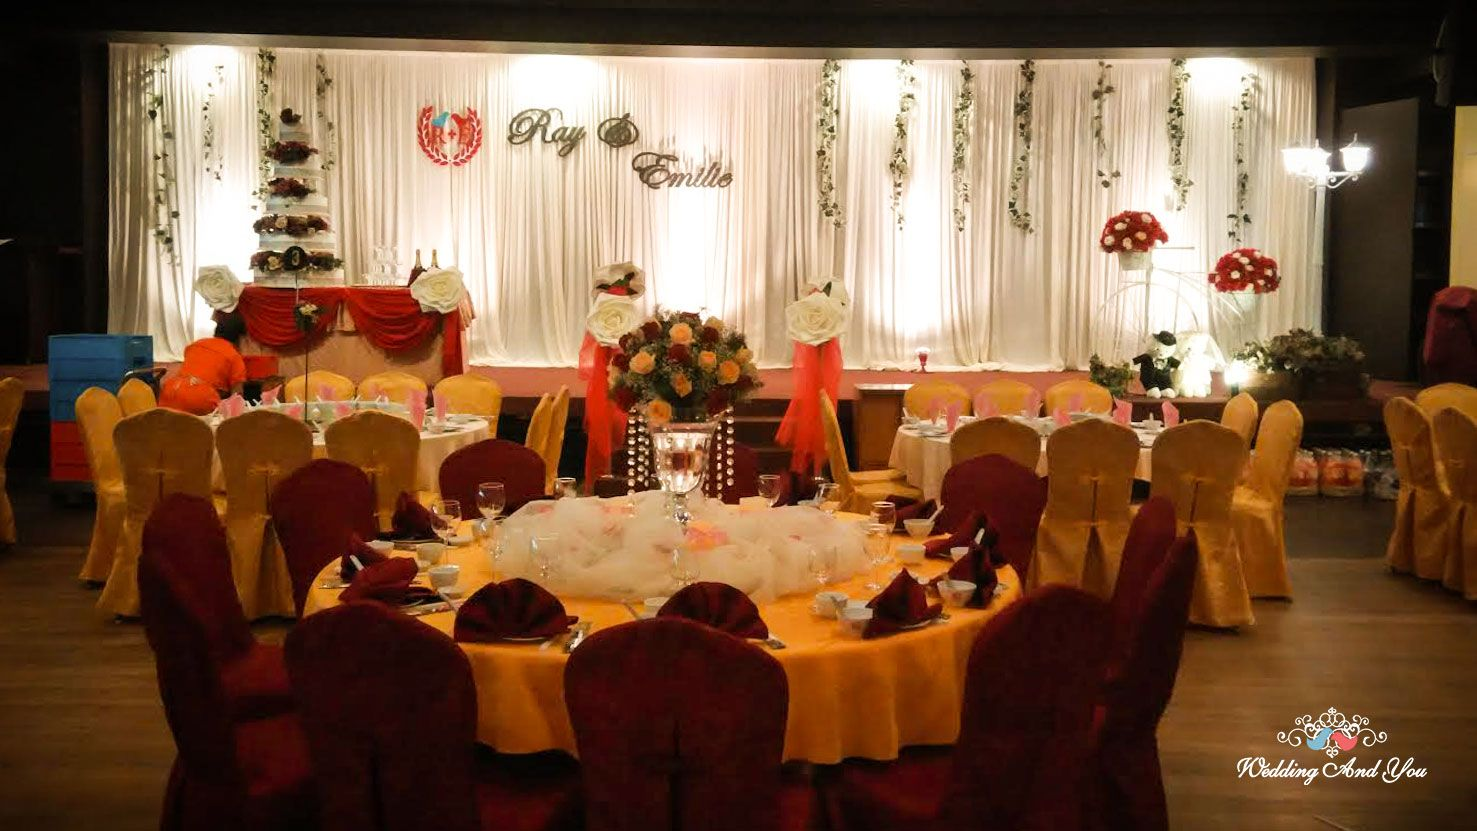 Add To Board VIP Table Setting by Wedding And You - 003 & VIP Table Setting by Wedding And You | Bridestory.com